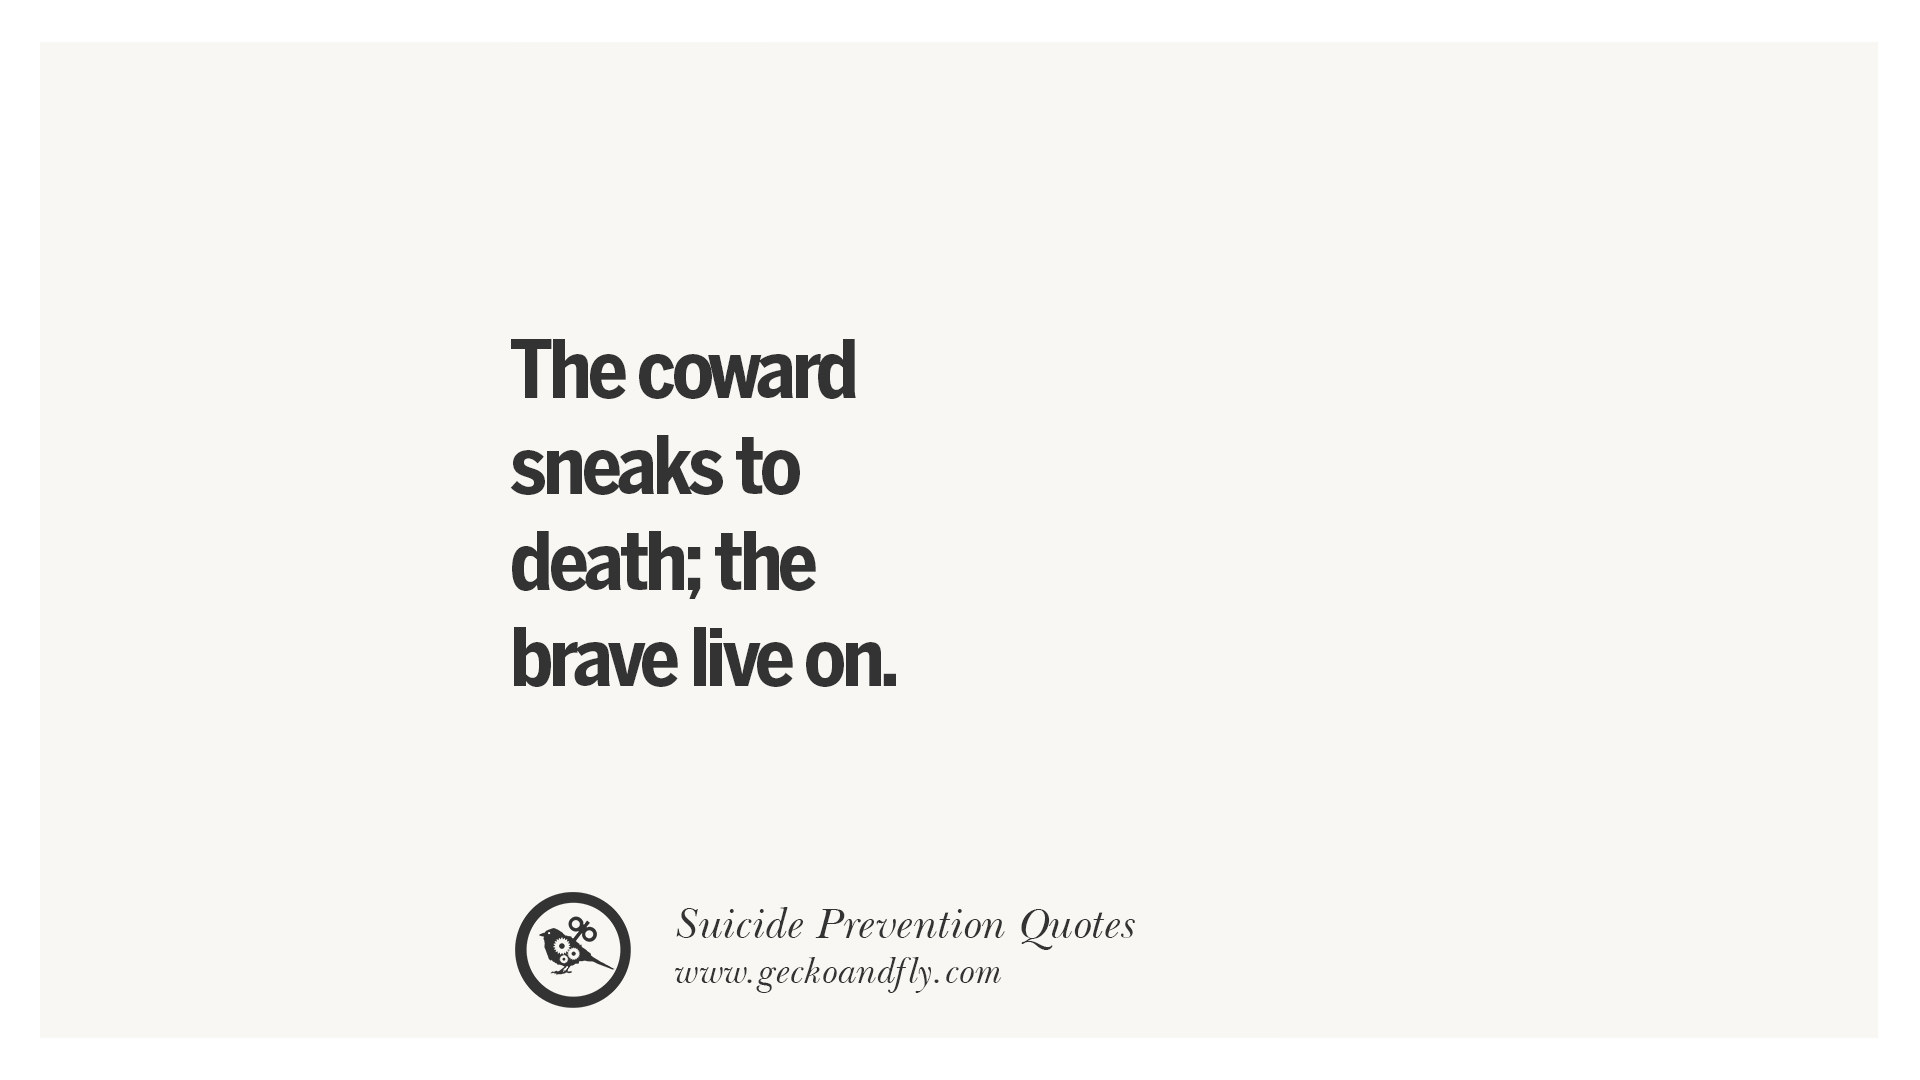 30 Helpful Suicidal Prevention Ideation Thoughts And Quotes